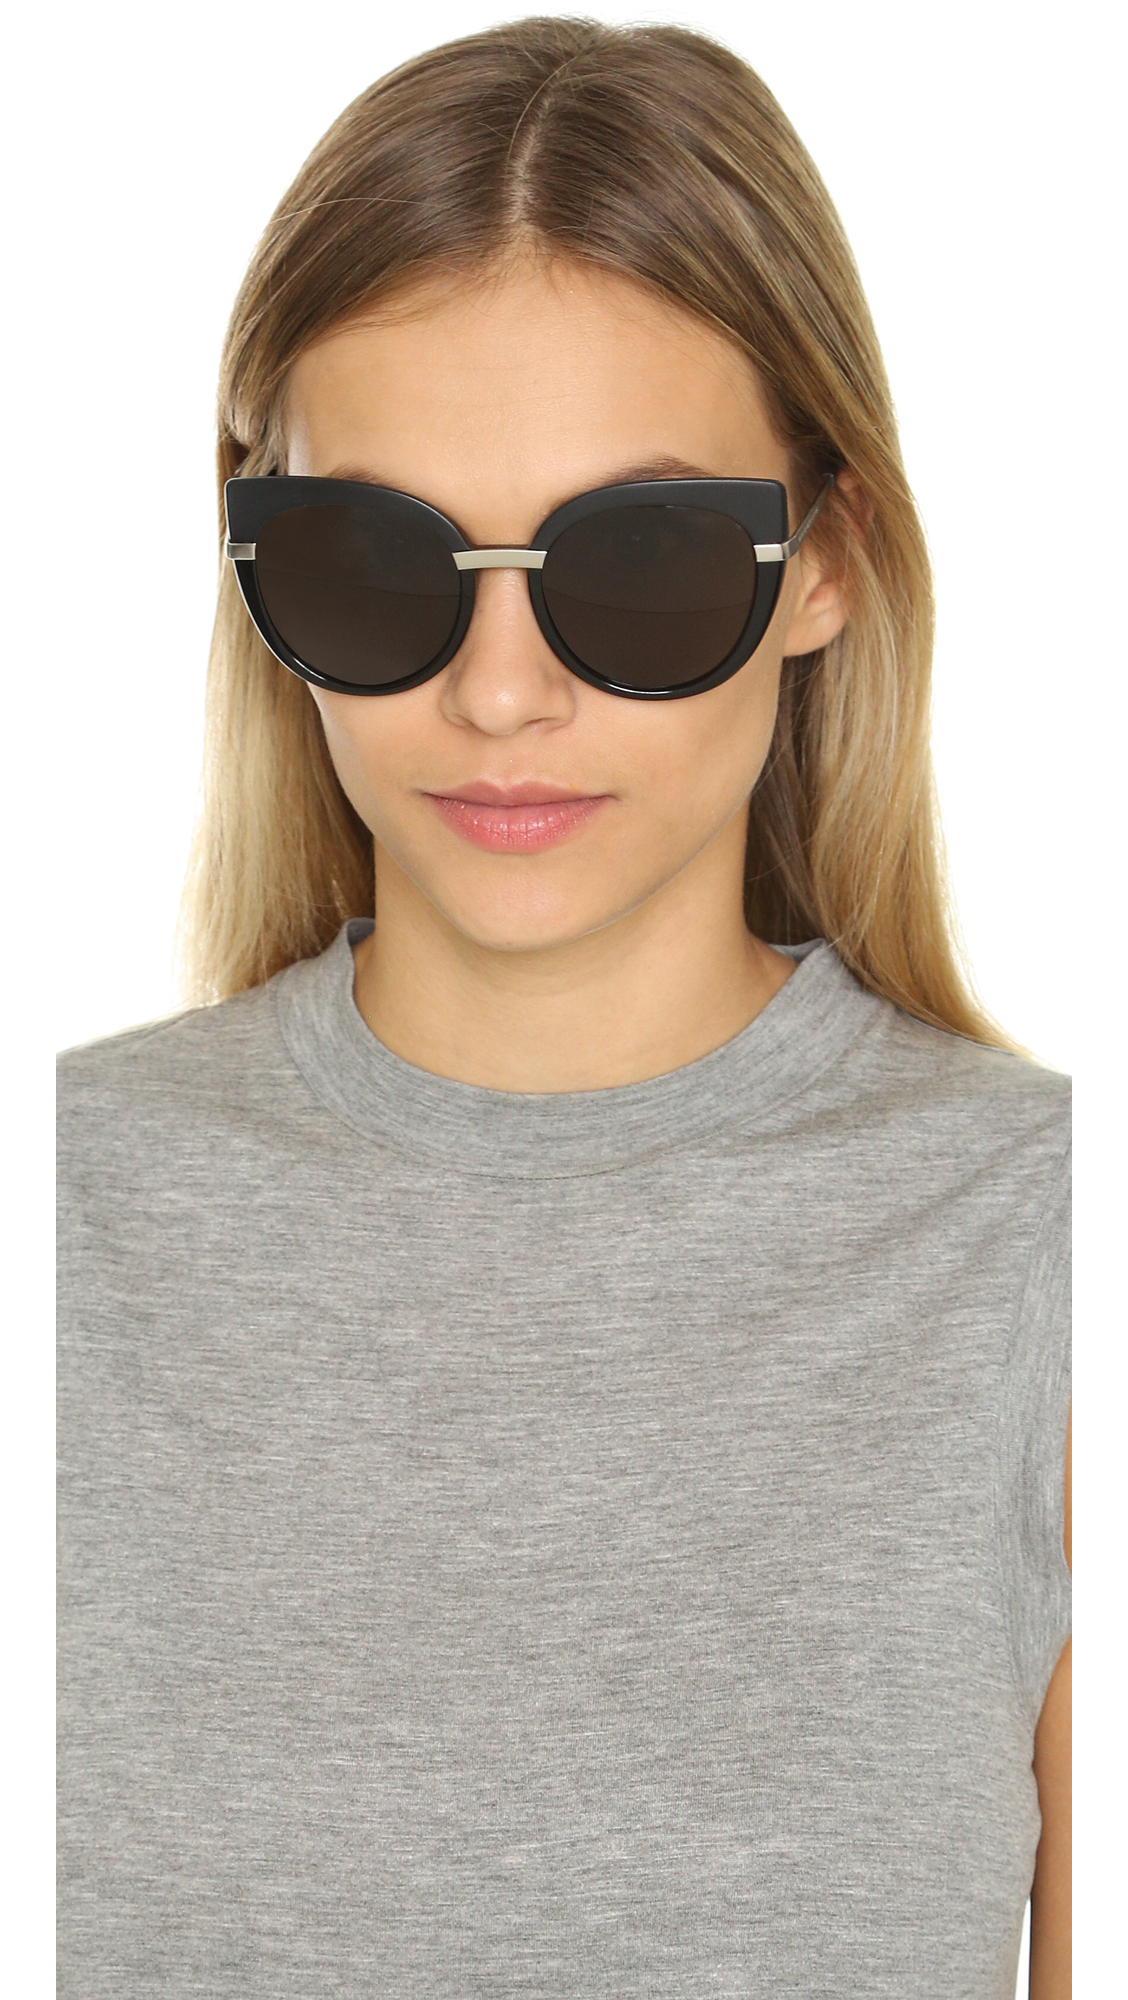 305d63ab9a2a Marc By Marc Jacobs Cat Eye Sunglasses - Spotted Havana/brown in ...